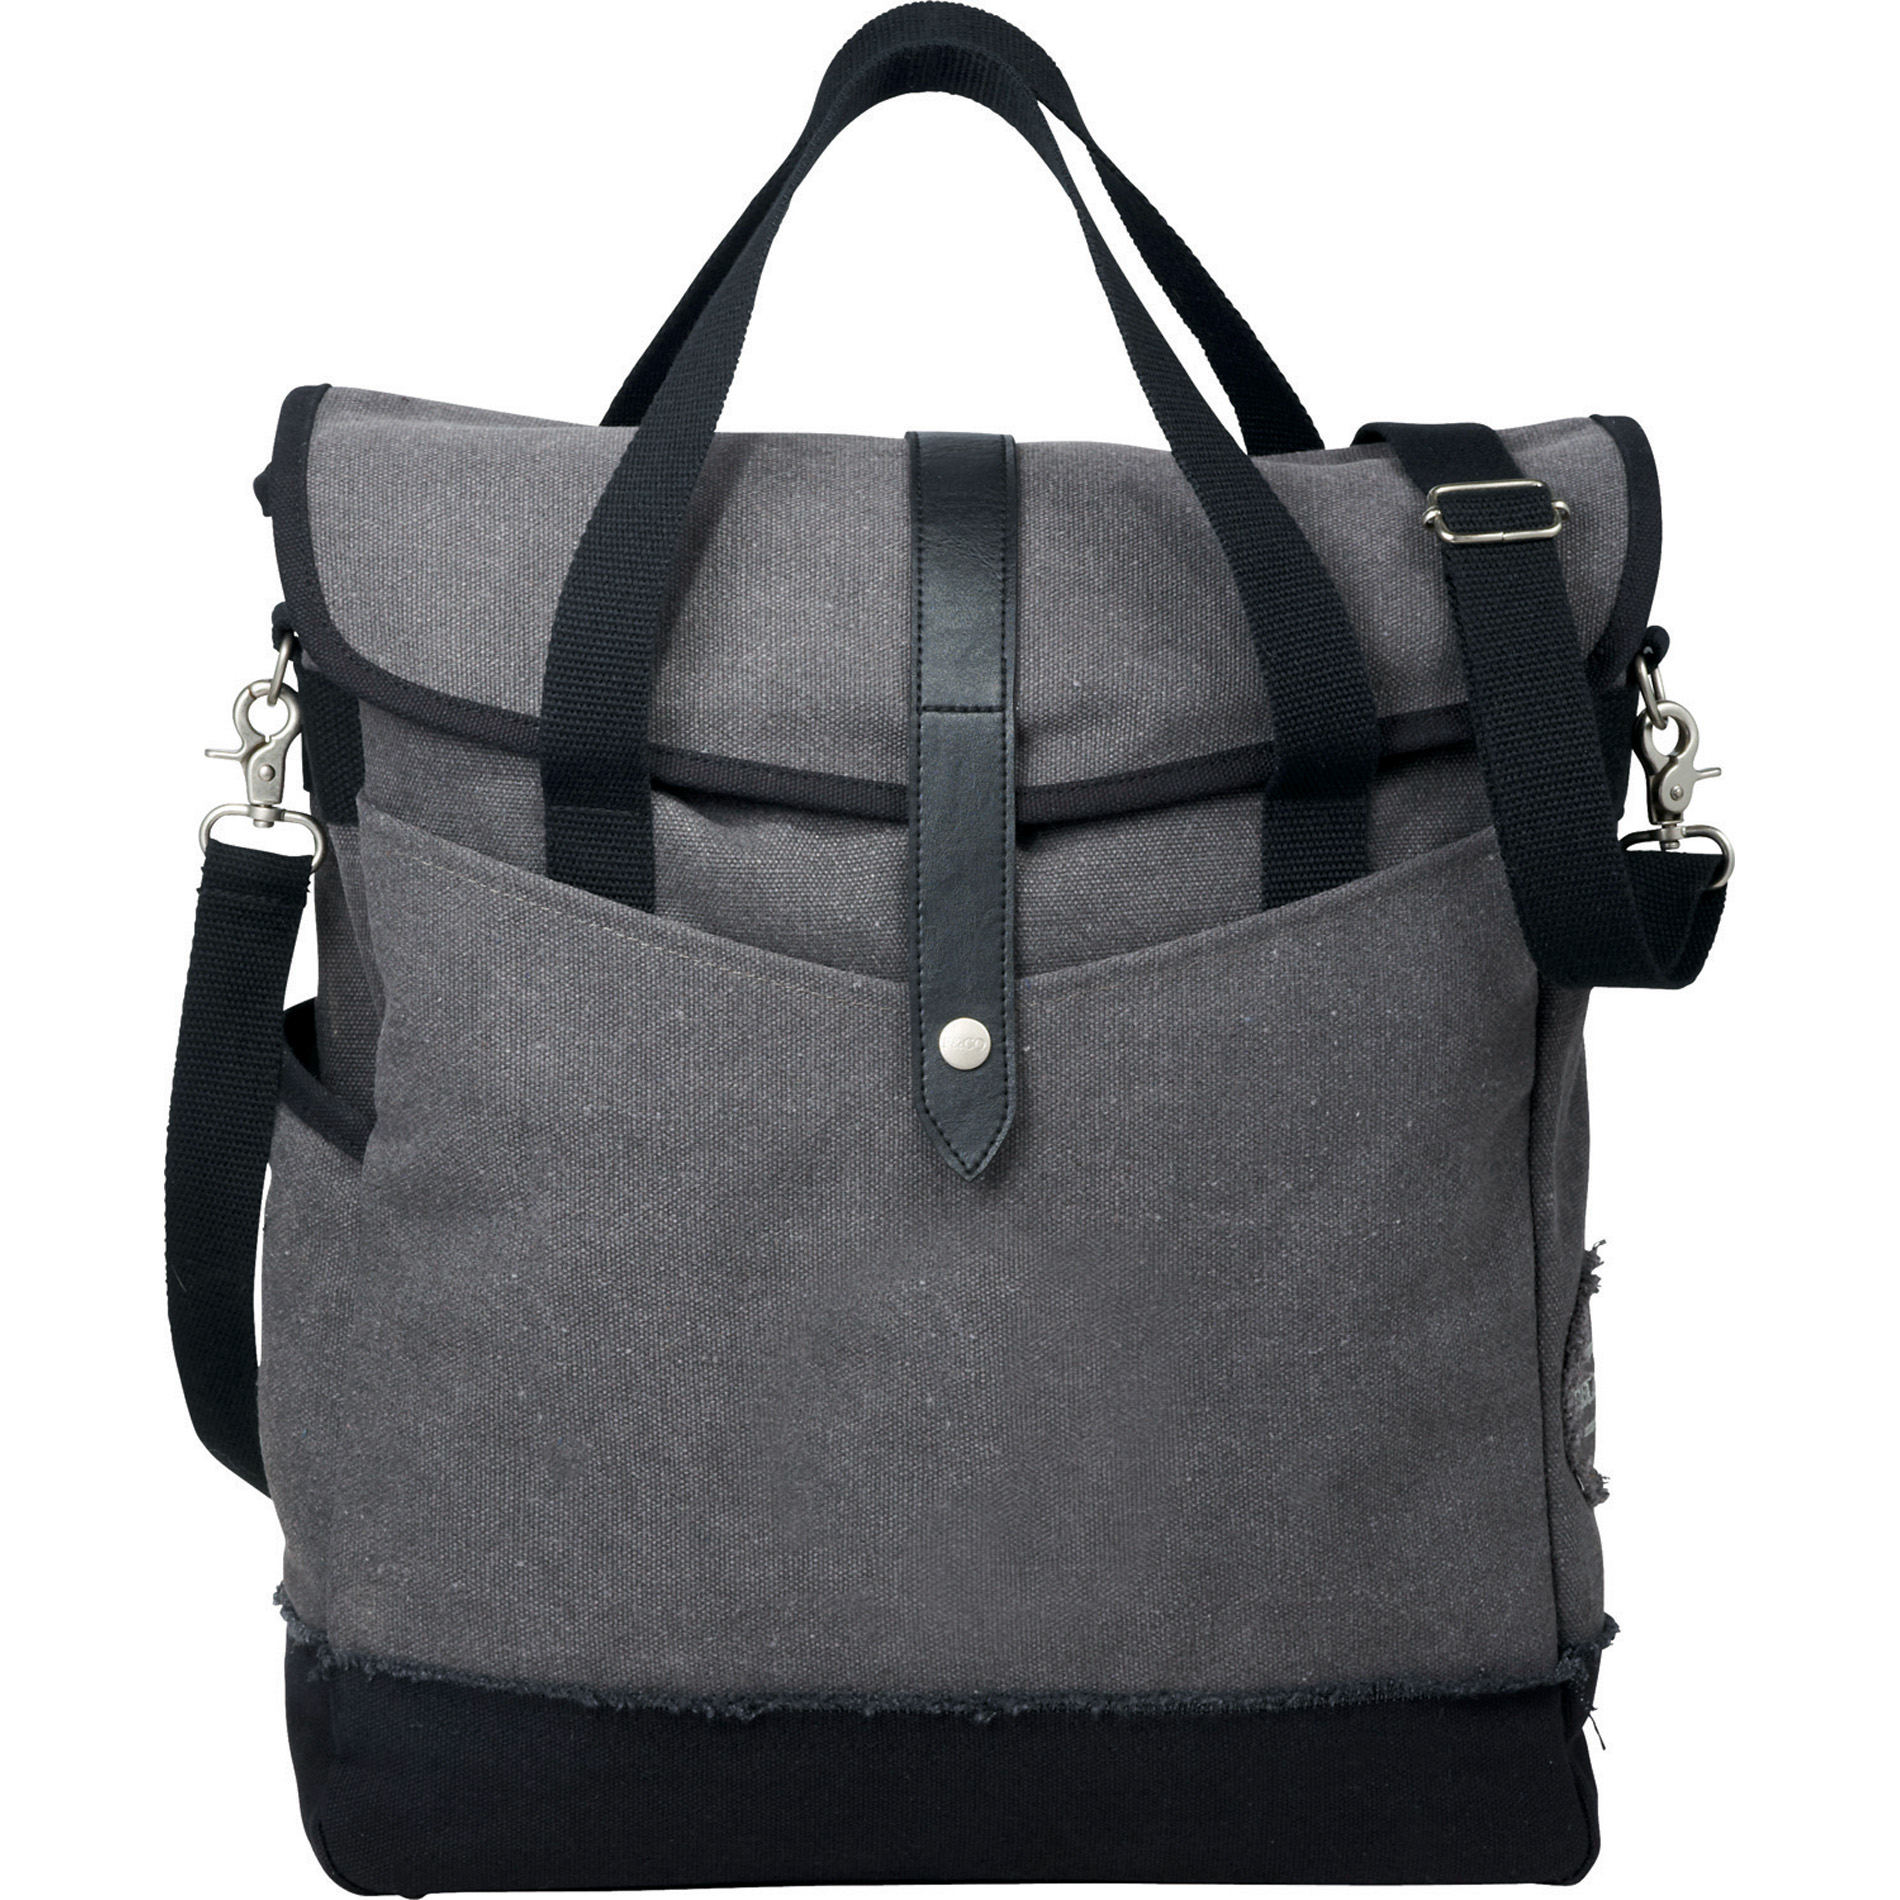 "Field & Co.® 7950-93 - Hudson 15"" Computer Tote"